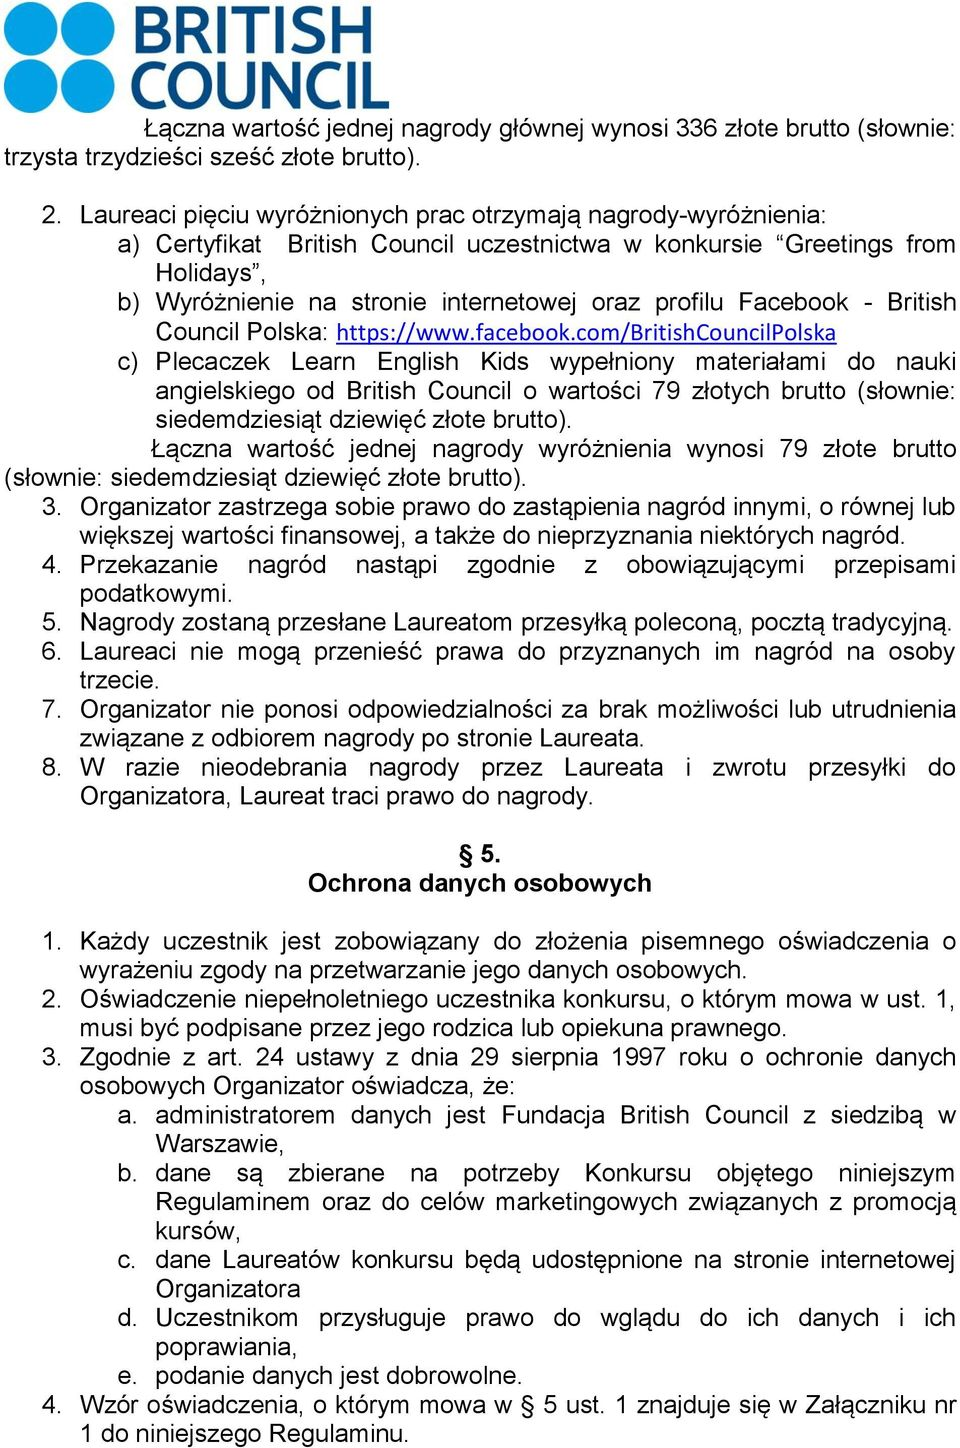 Facebook - British Council Polska: https://www.facebook.